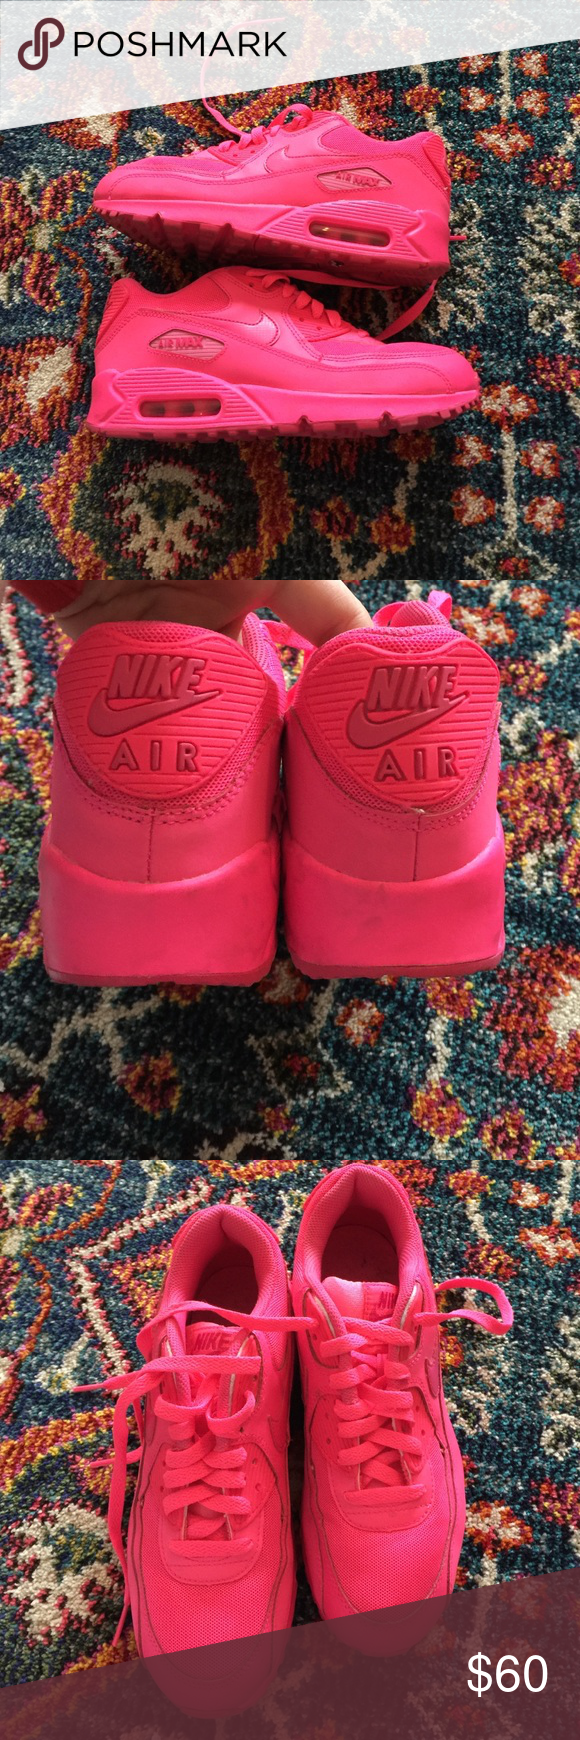 Neon Hot Pink Air Max 90 Size 6Y This awesome Air Max 90's